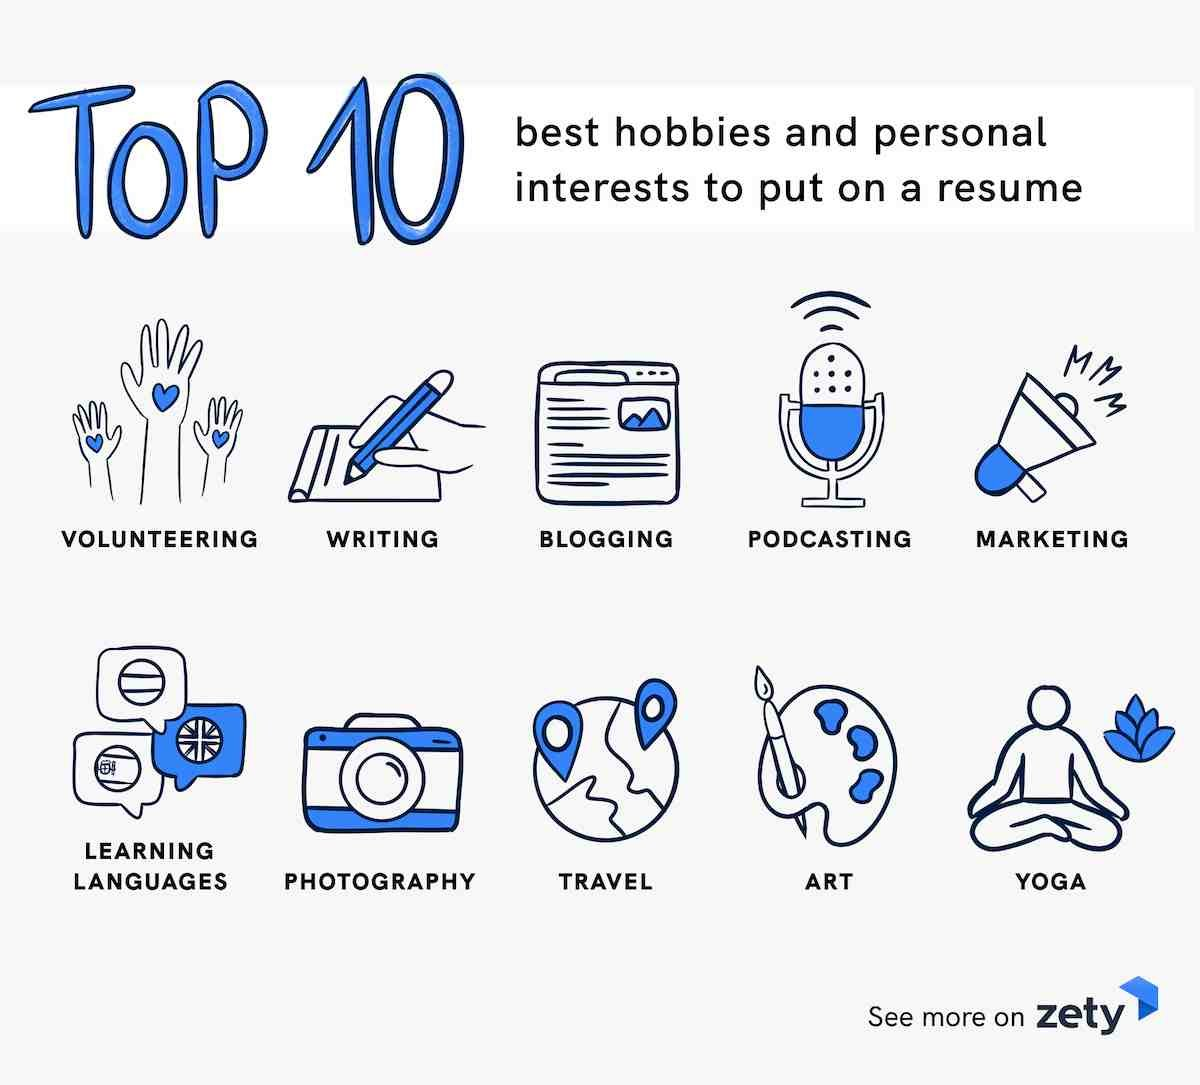 of hobbies and interests for resume cv examples engineers top best personal to put on Resume Hobbies For Resume For Engineers